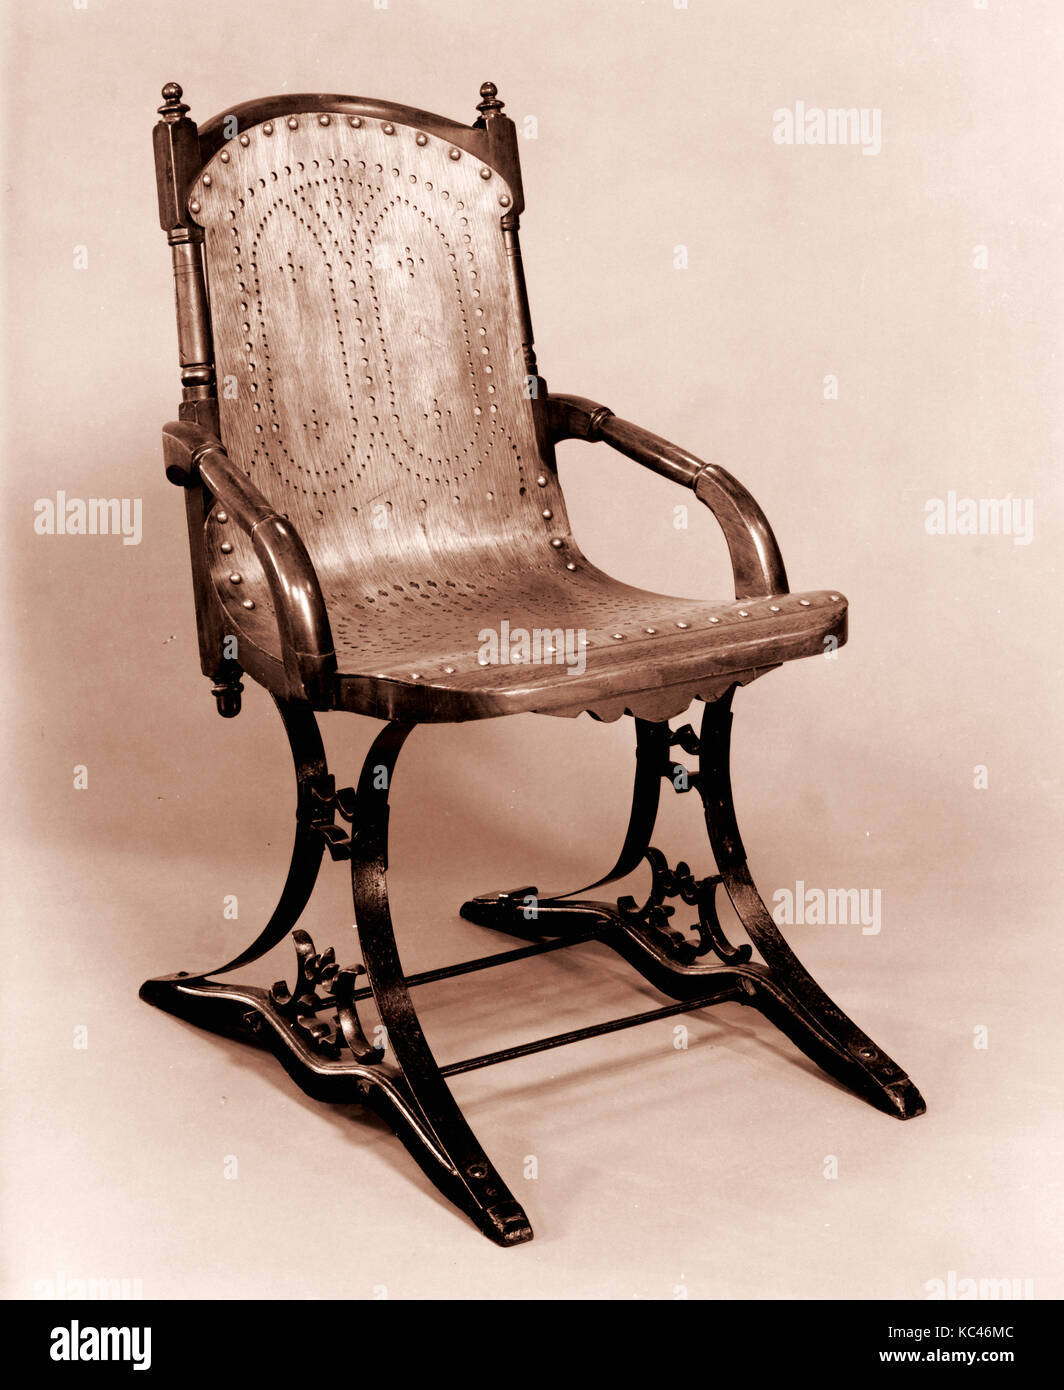 Sensational Platform Rocking Chair Gardner And Company Patented 1872 Gmtry Best Dining Table And Chair Ideas Images Gmtryco